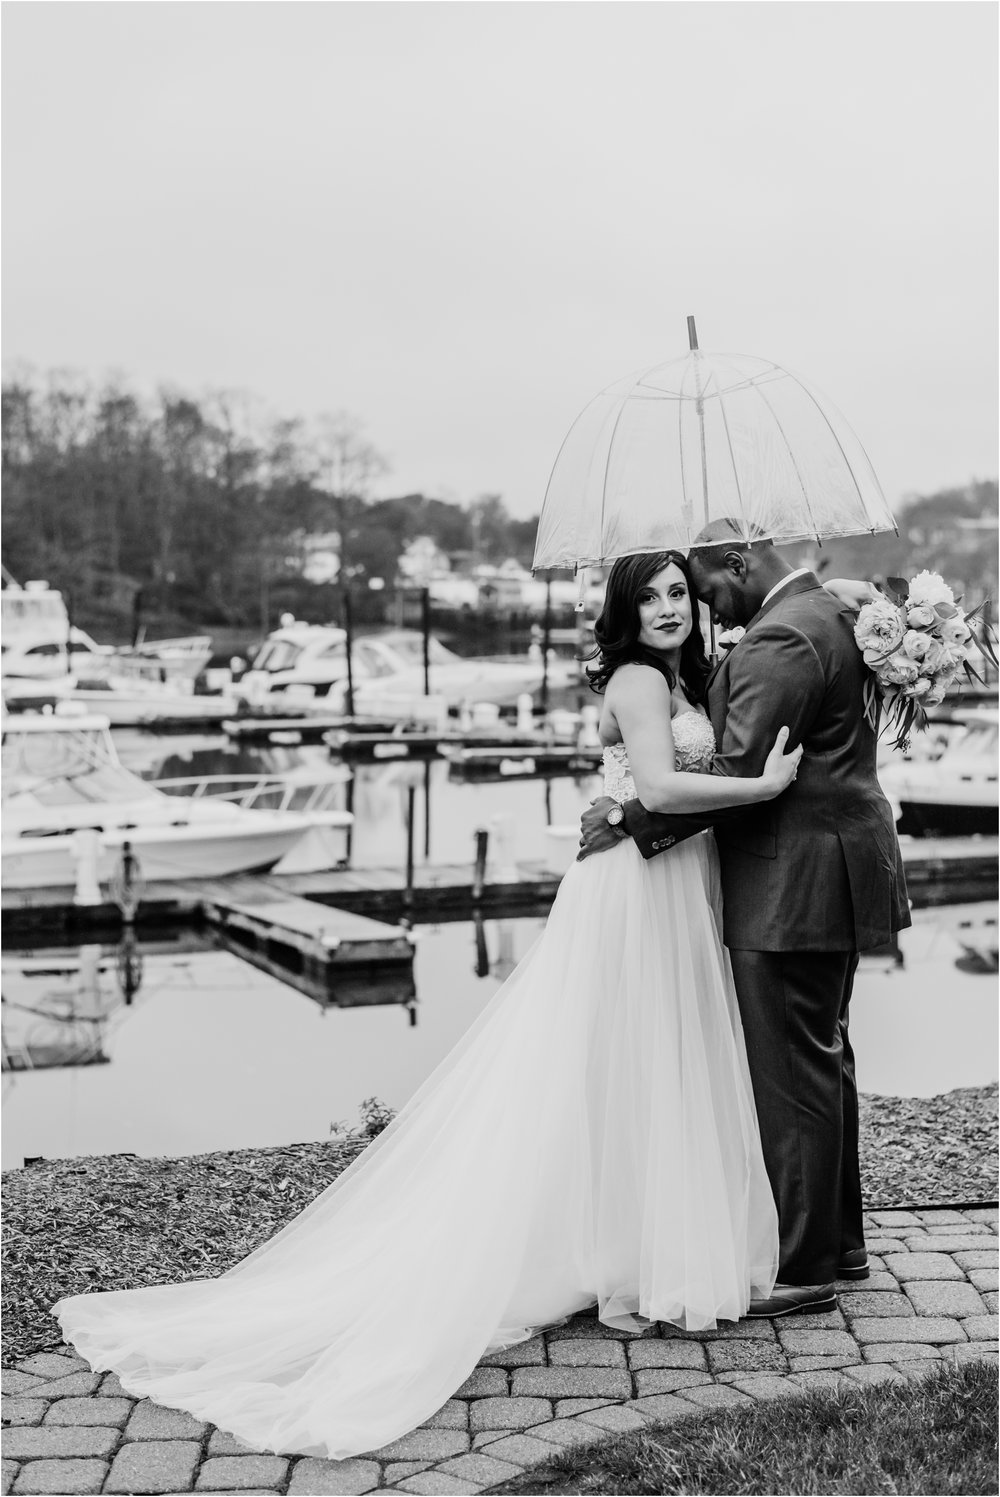 Zeena + Anthony Boston Wedding Photographer Danversport Yacht Club-54.jpg